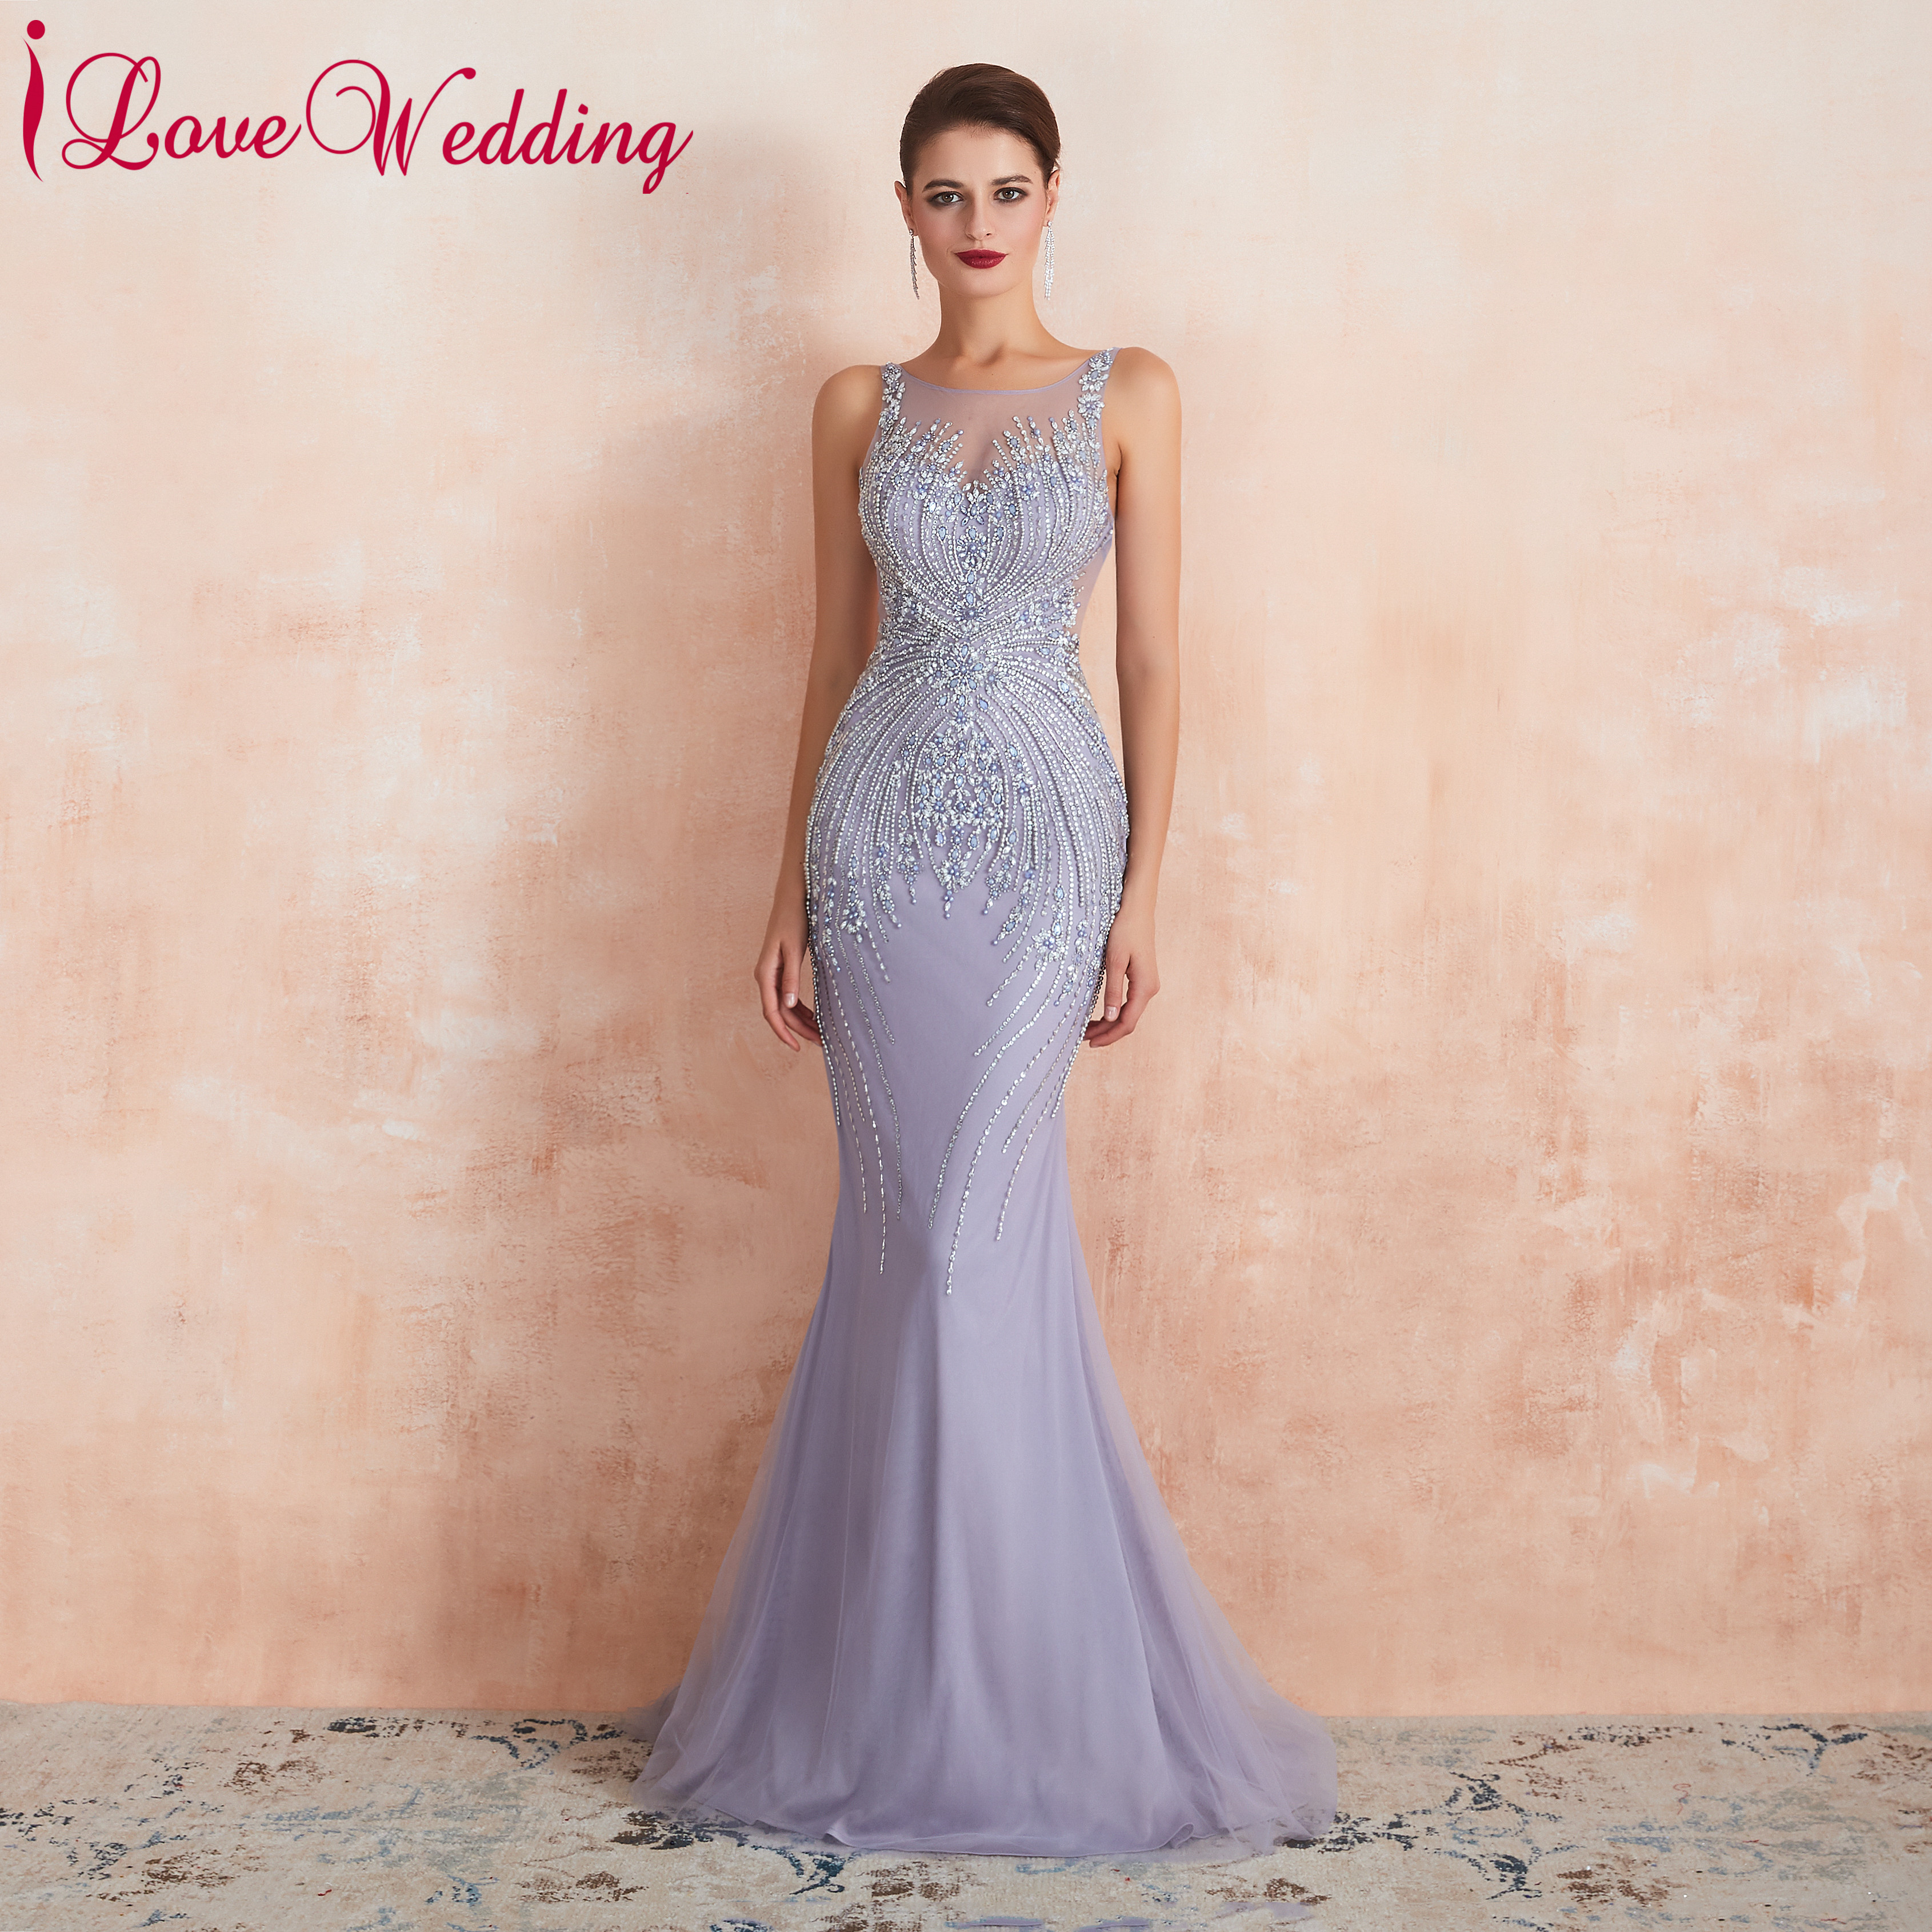 Mermaid Evening Dress 2019 Sleeveless Robe De Soiree Lilac Heavy Beaded Luxury Formal Evening Dress For Party Gown